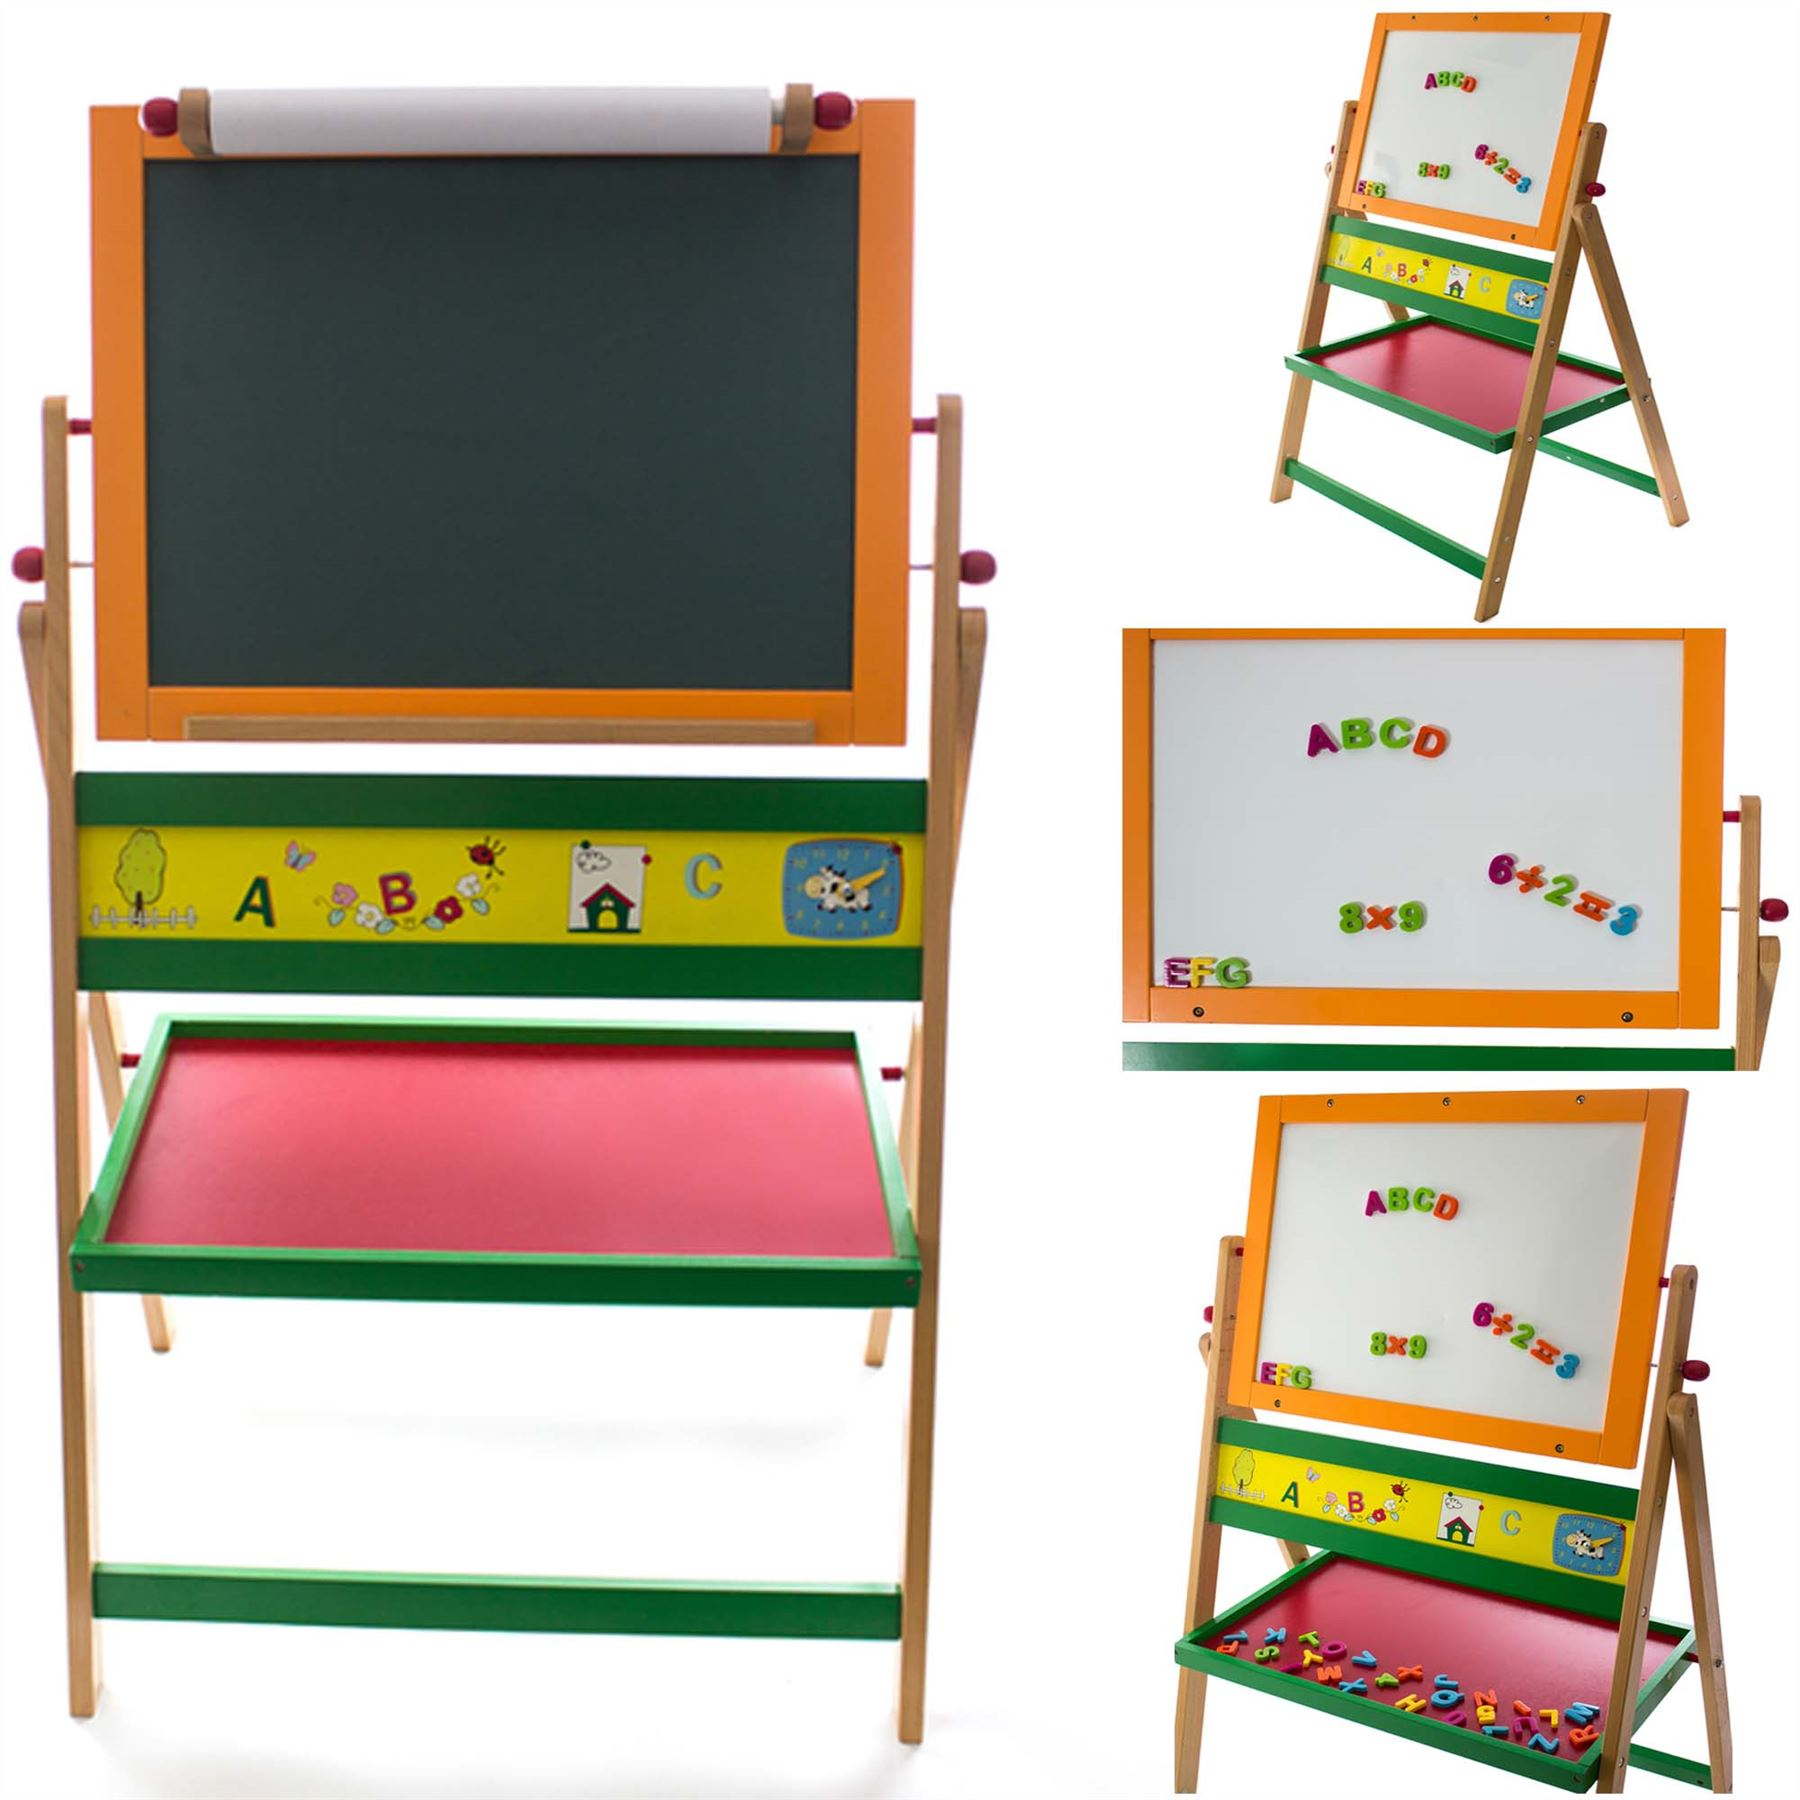 kids art double sided magnetic 2 in 1 easel chalk white black drawing board toy 4534256737466 ebay. Black Bedroom Furniture Sets. Home Design Ideas